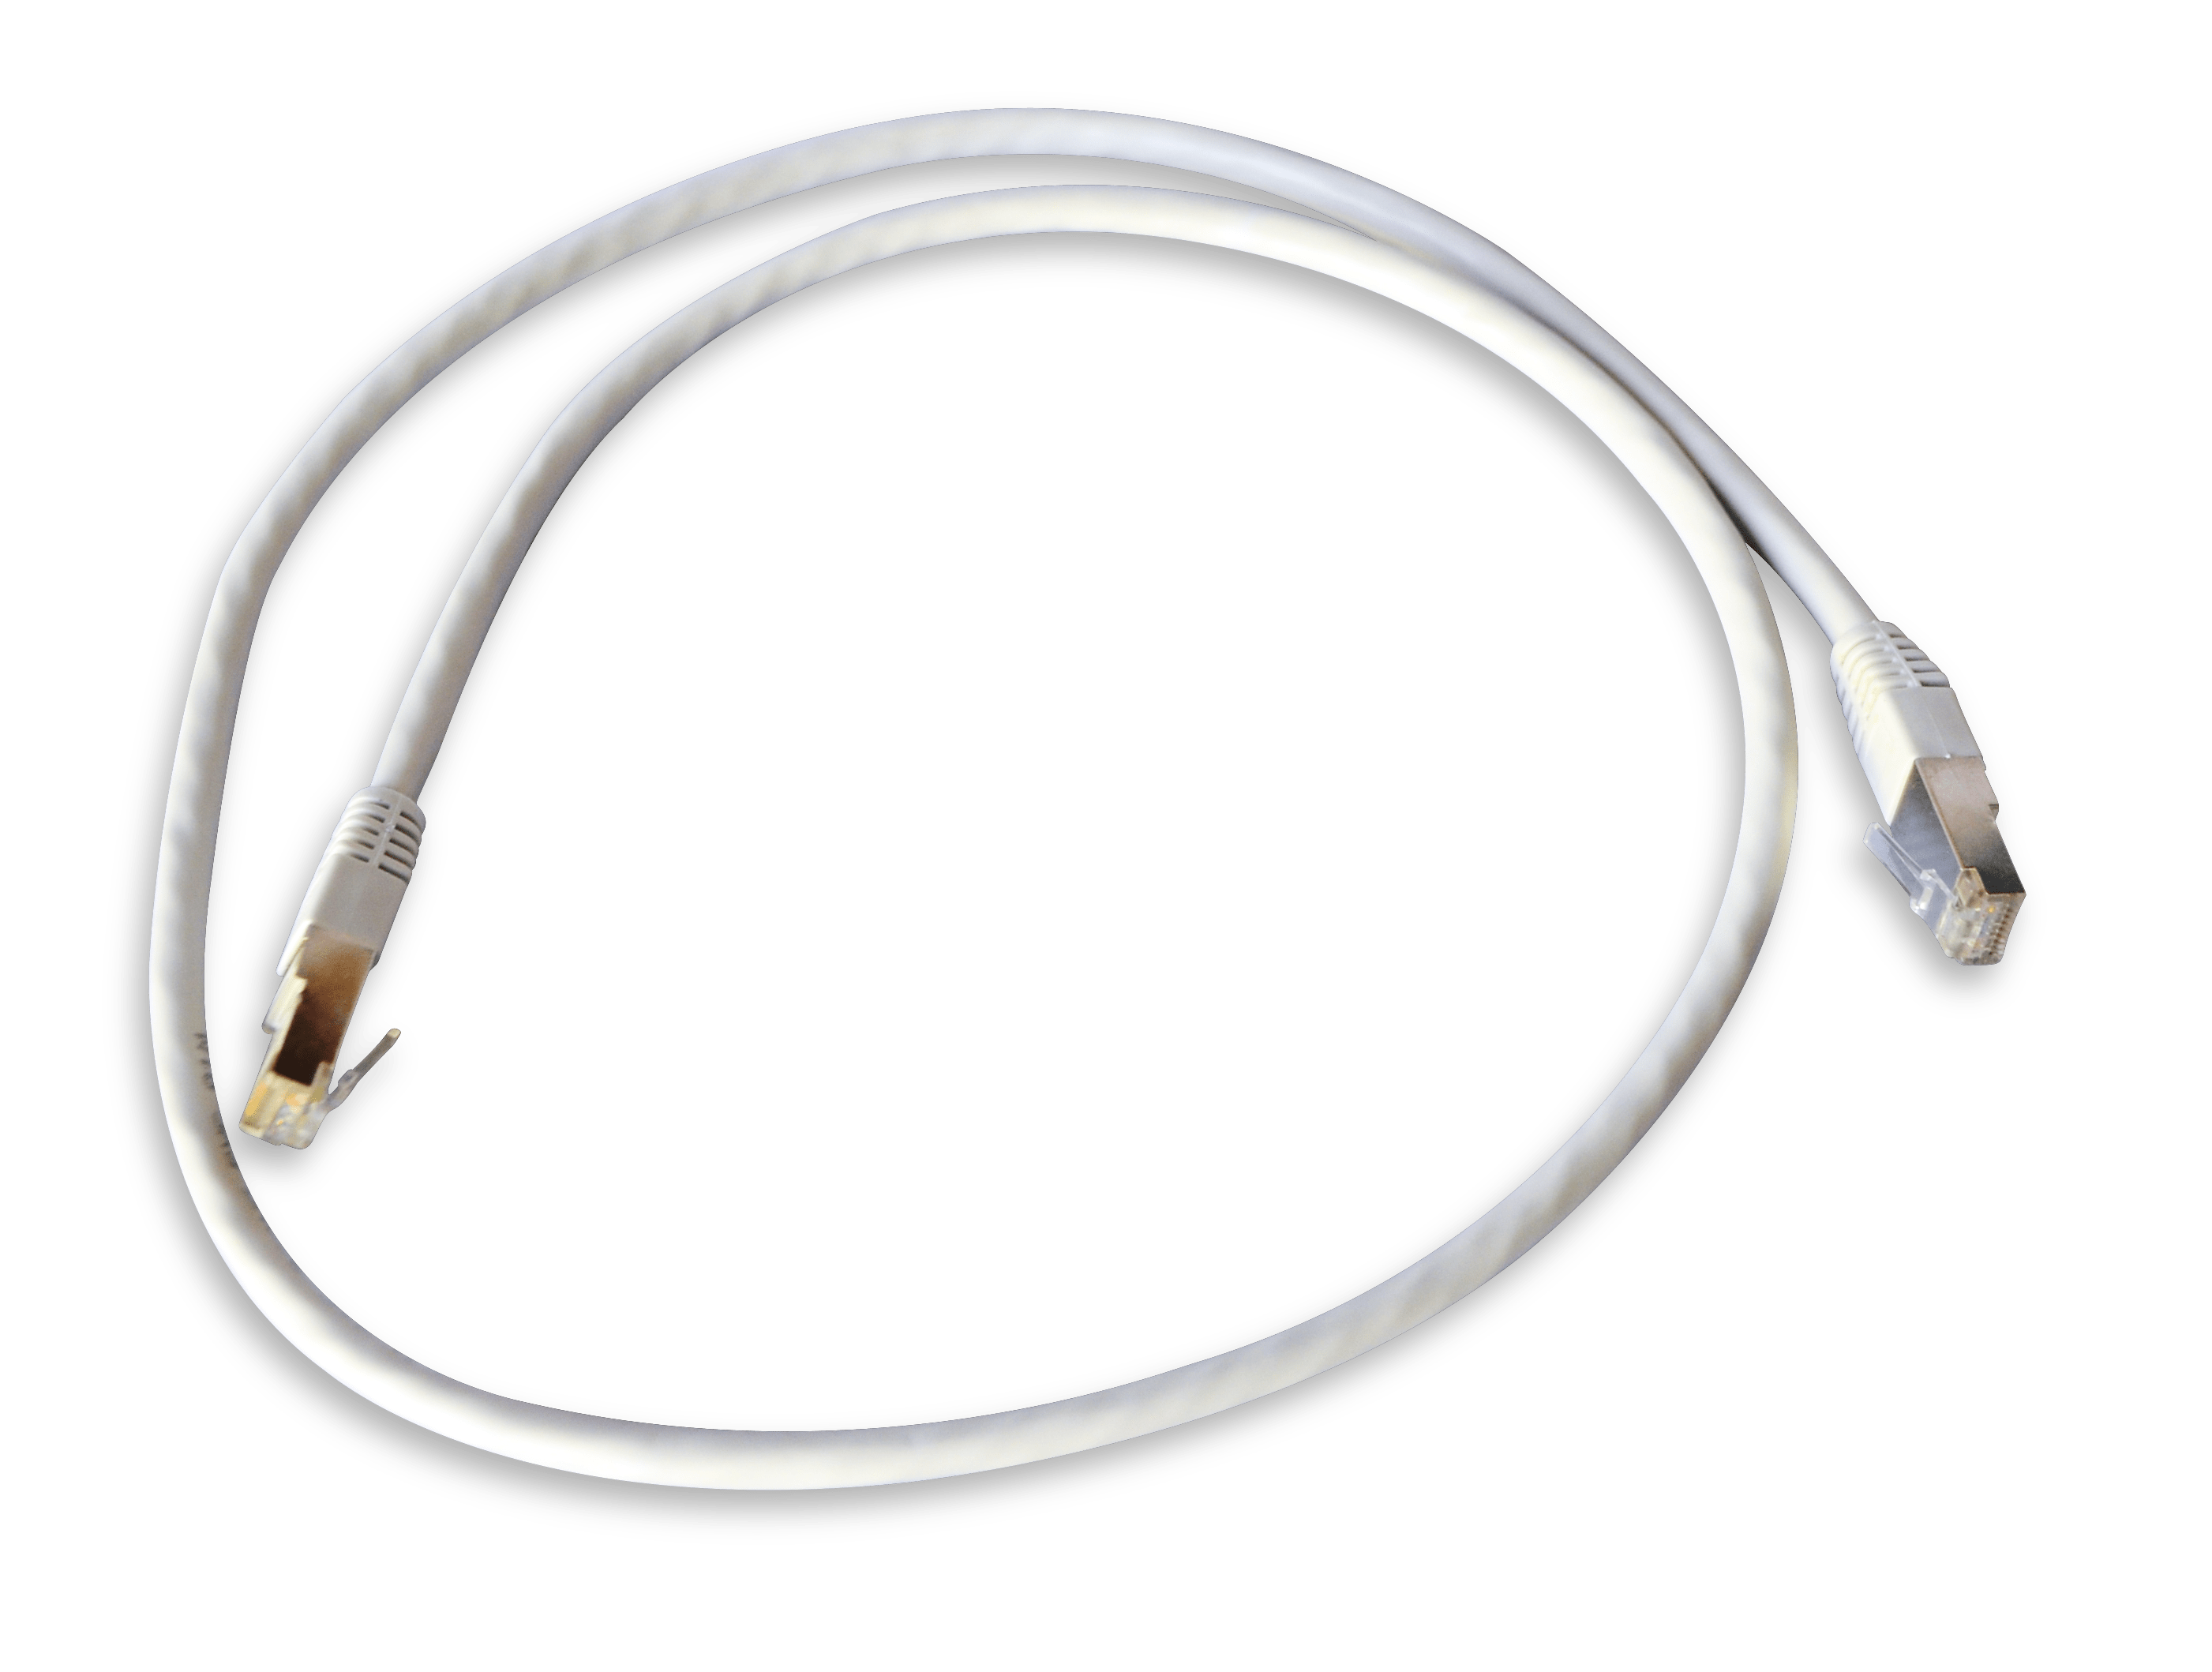 Patch Cords Interconnect Solutions